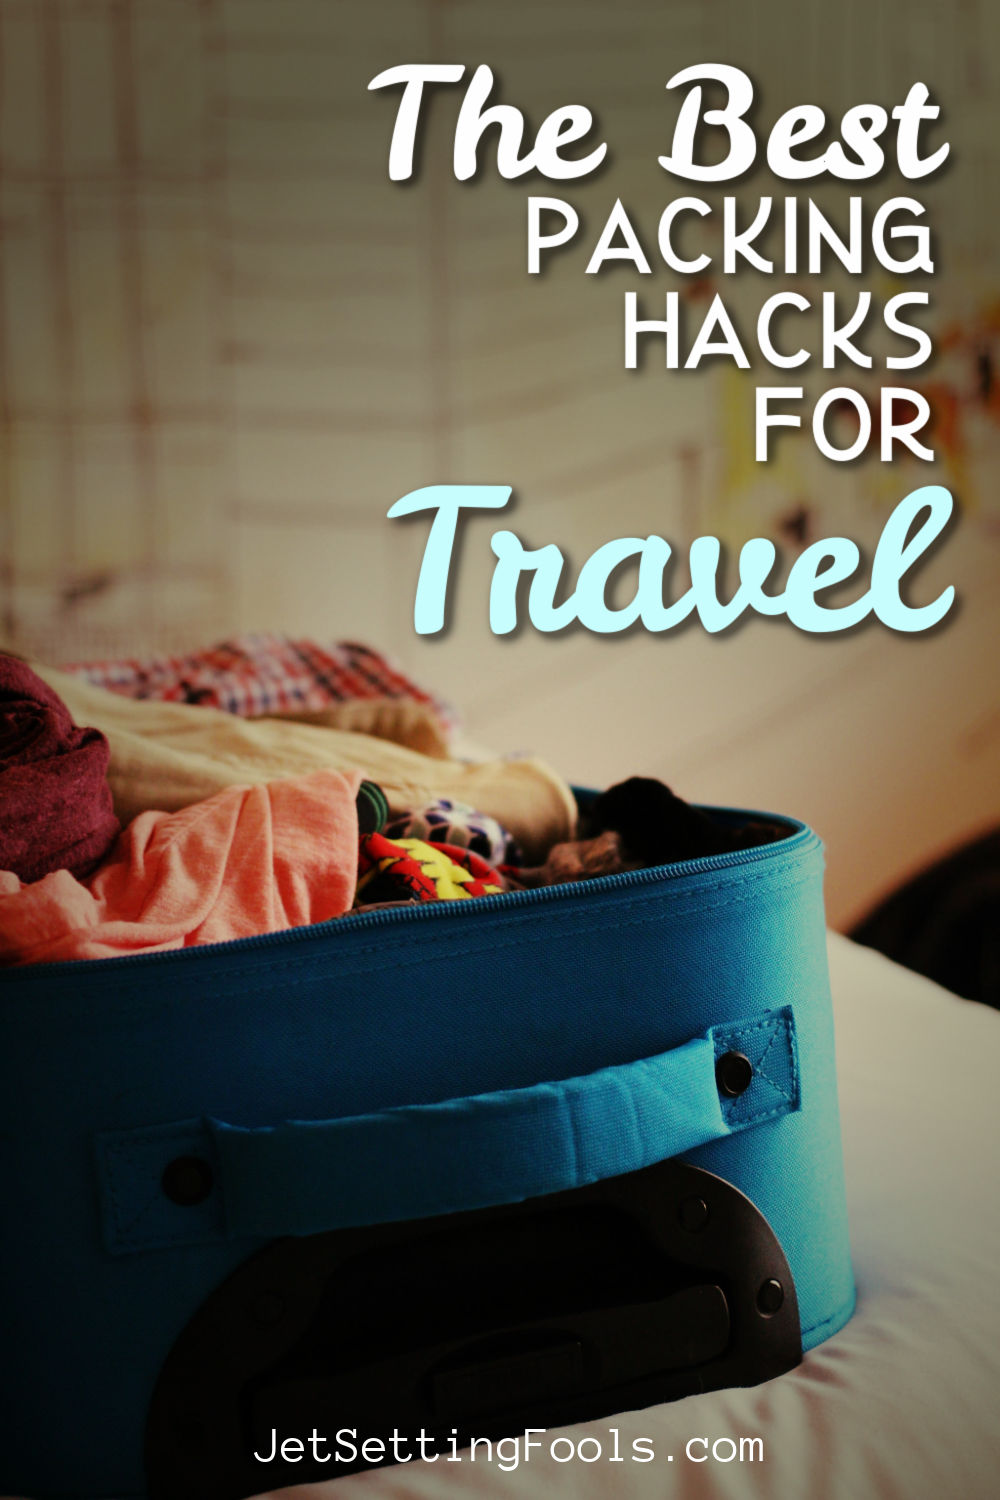 Best Packing Hacks for Travel by JetSettingFools.com